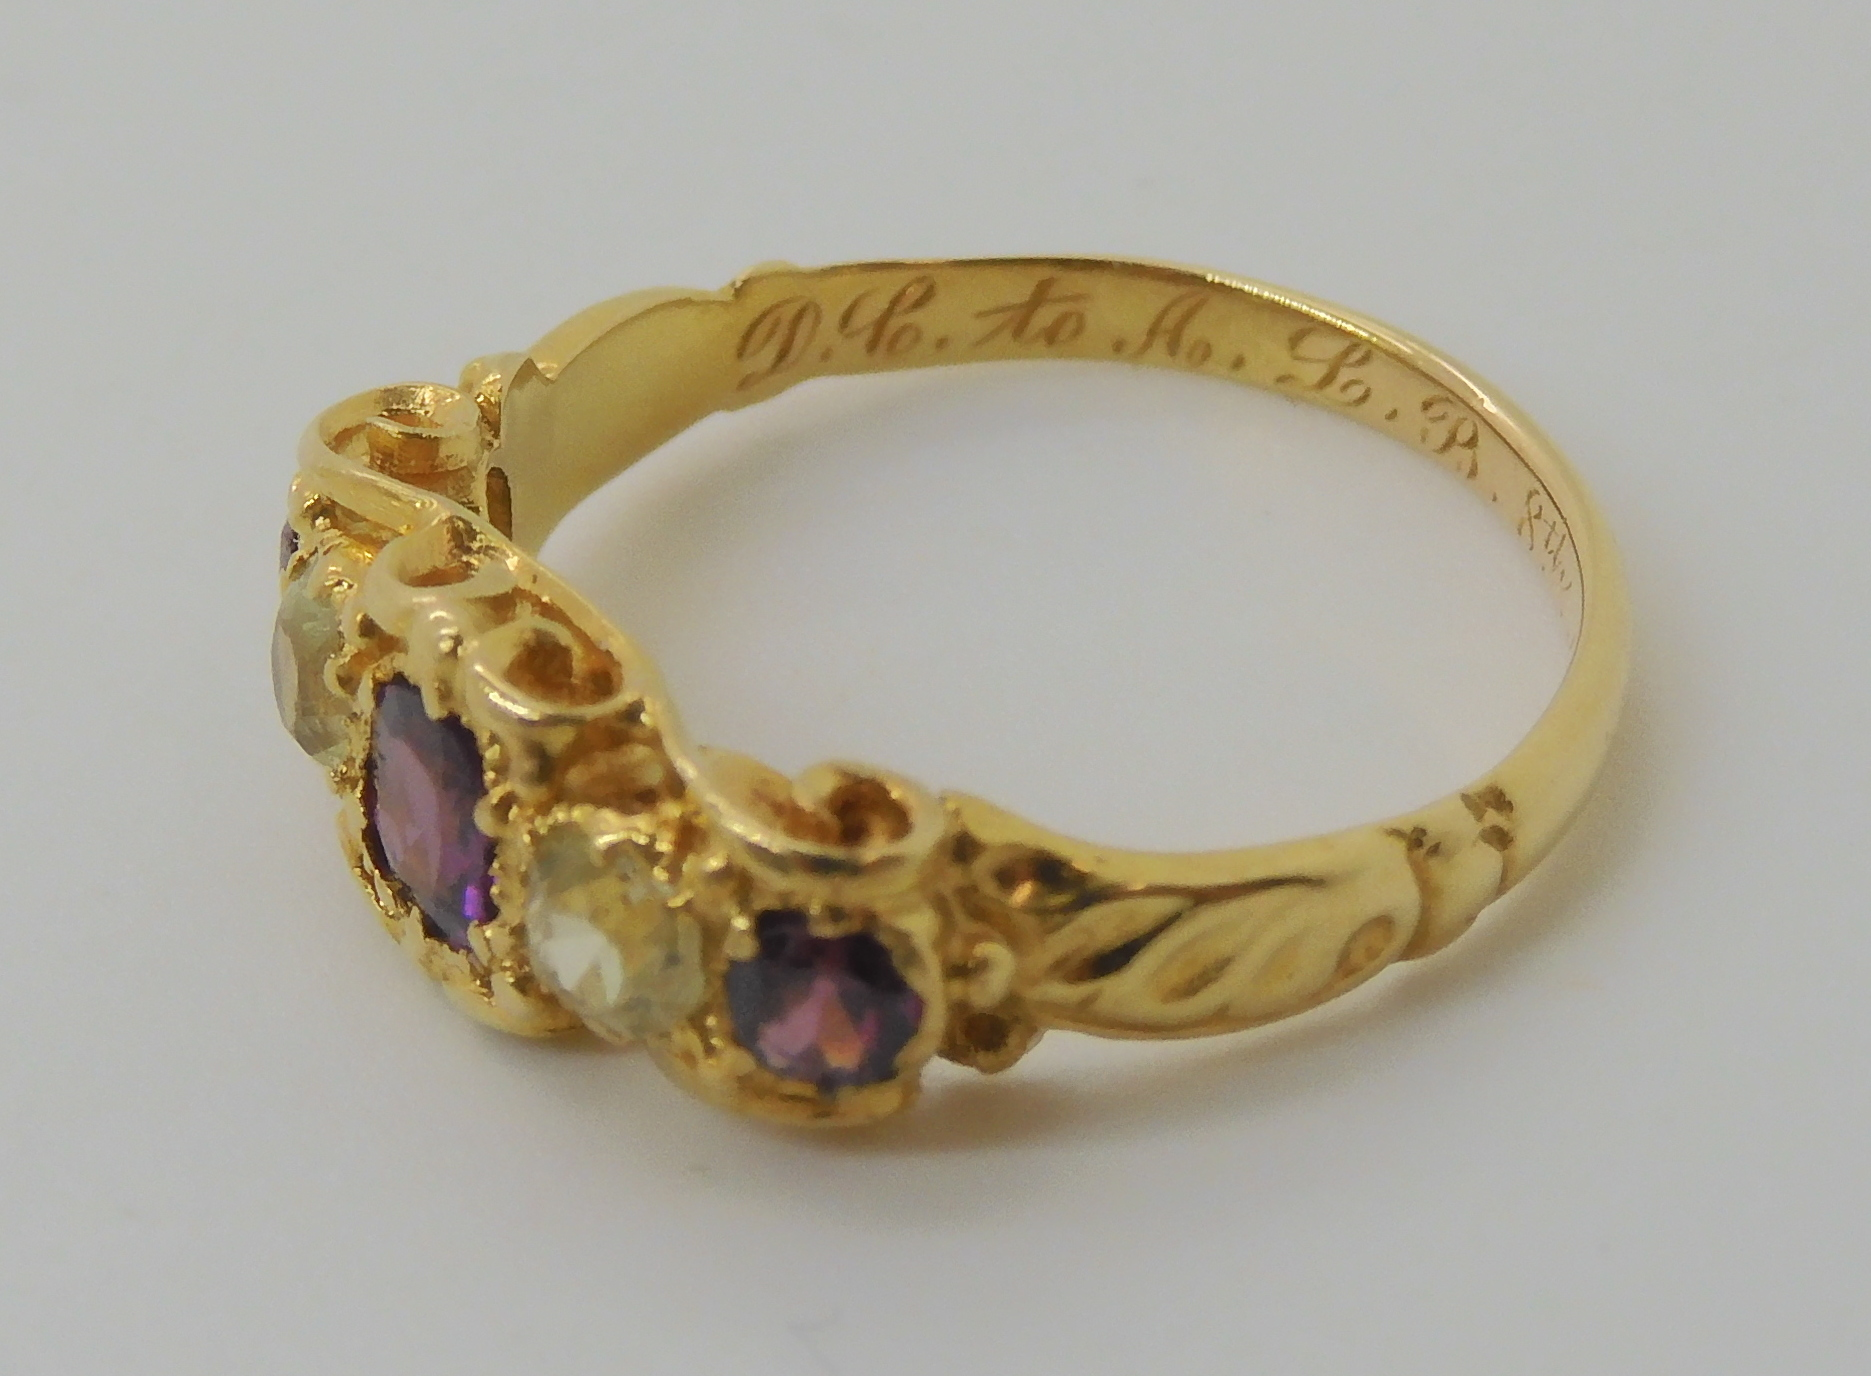 A VICTORIAN GEM SET RING inscribed and dated 1861, set with garnets and pale green gems, finger size - Image 5 of 7